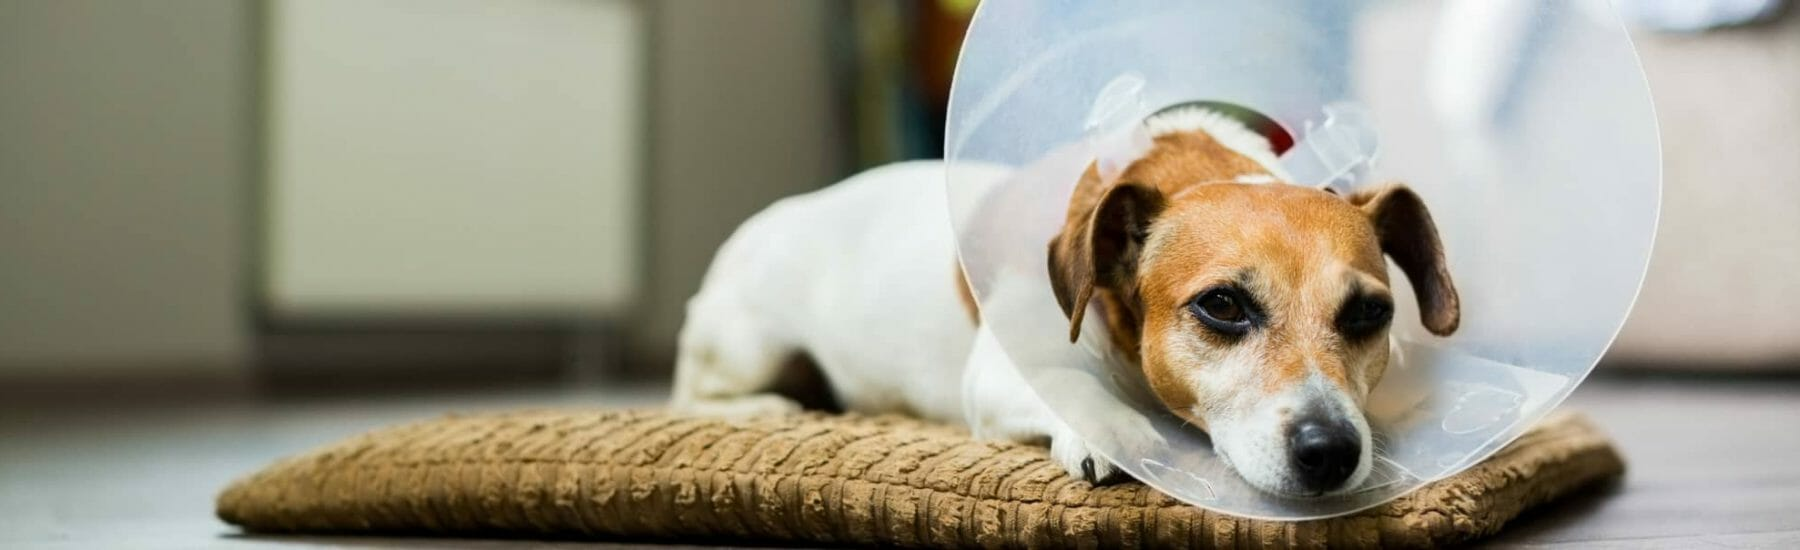 Dog wearing a cone and lying down